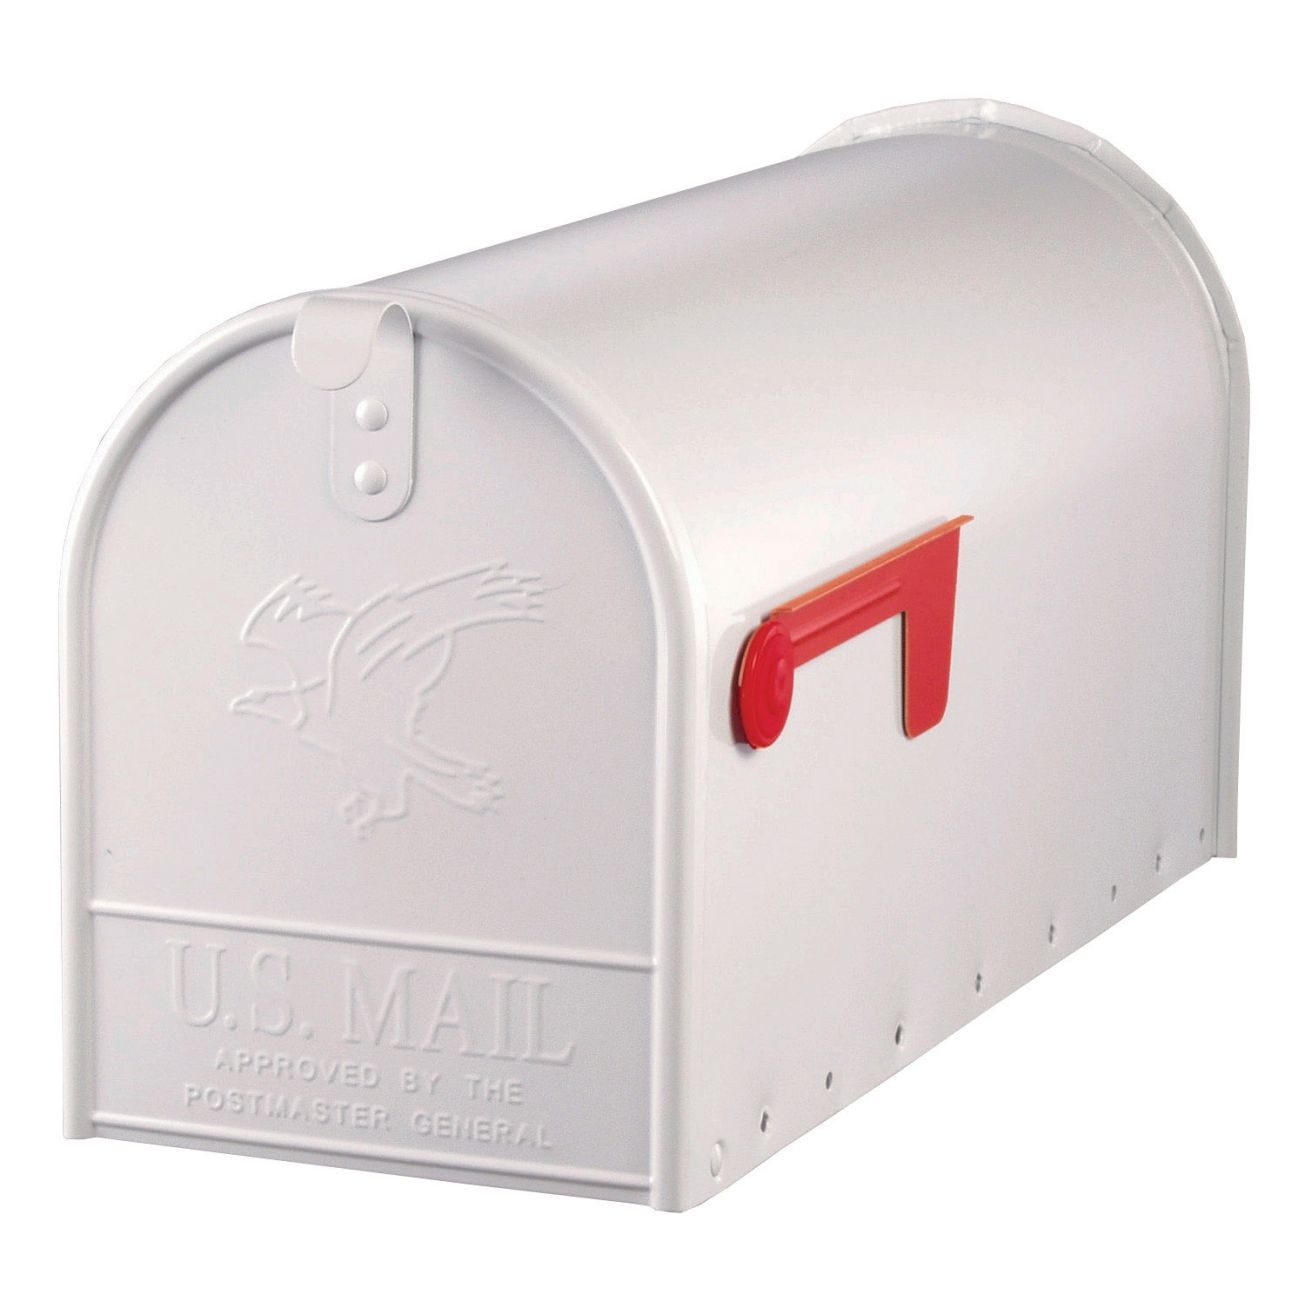 ordinary Ace Hardware Mailbox Post Part - 13: Solar Group White Elite Mailbox Size T2 (E1600W00) - Post Mount Mailboxes - Ace  Hardware